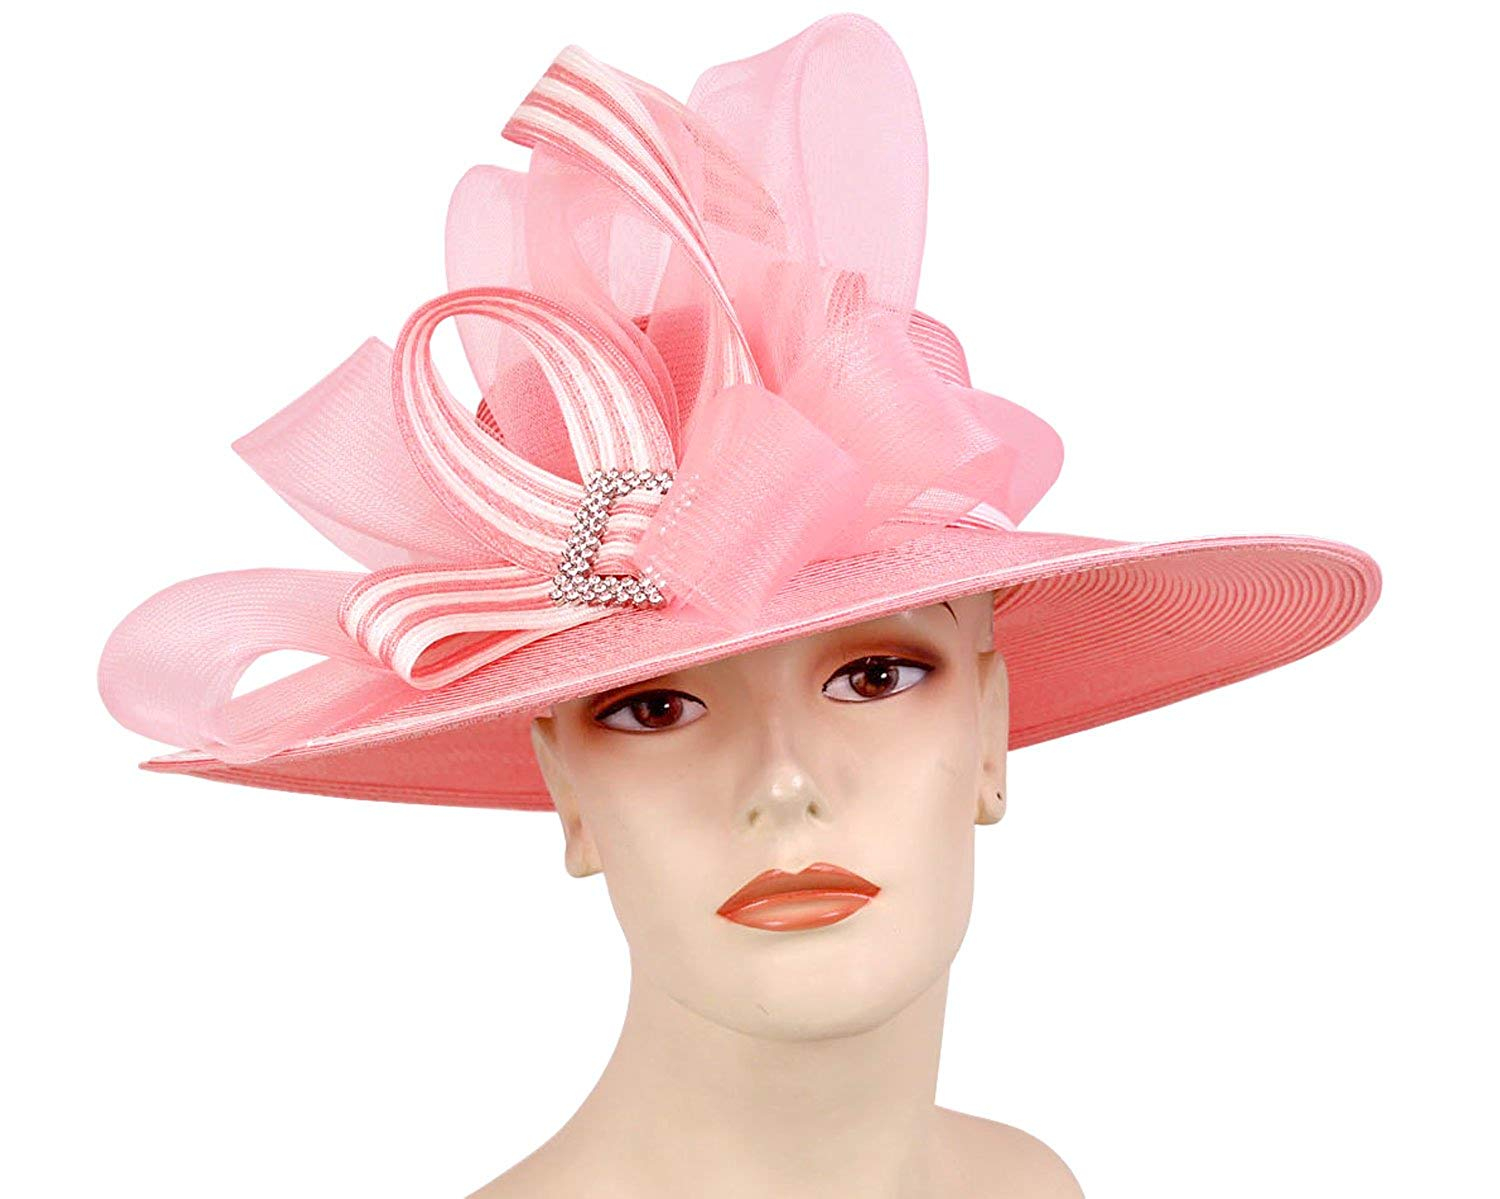 97d99a43180 Get Quotations · Ms Divine Women s Large Brim Straw Derby Church Hats Dress  Formal Sun Hats  1520